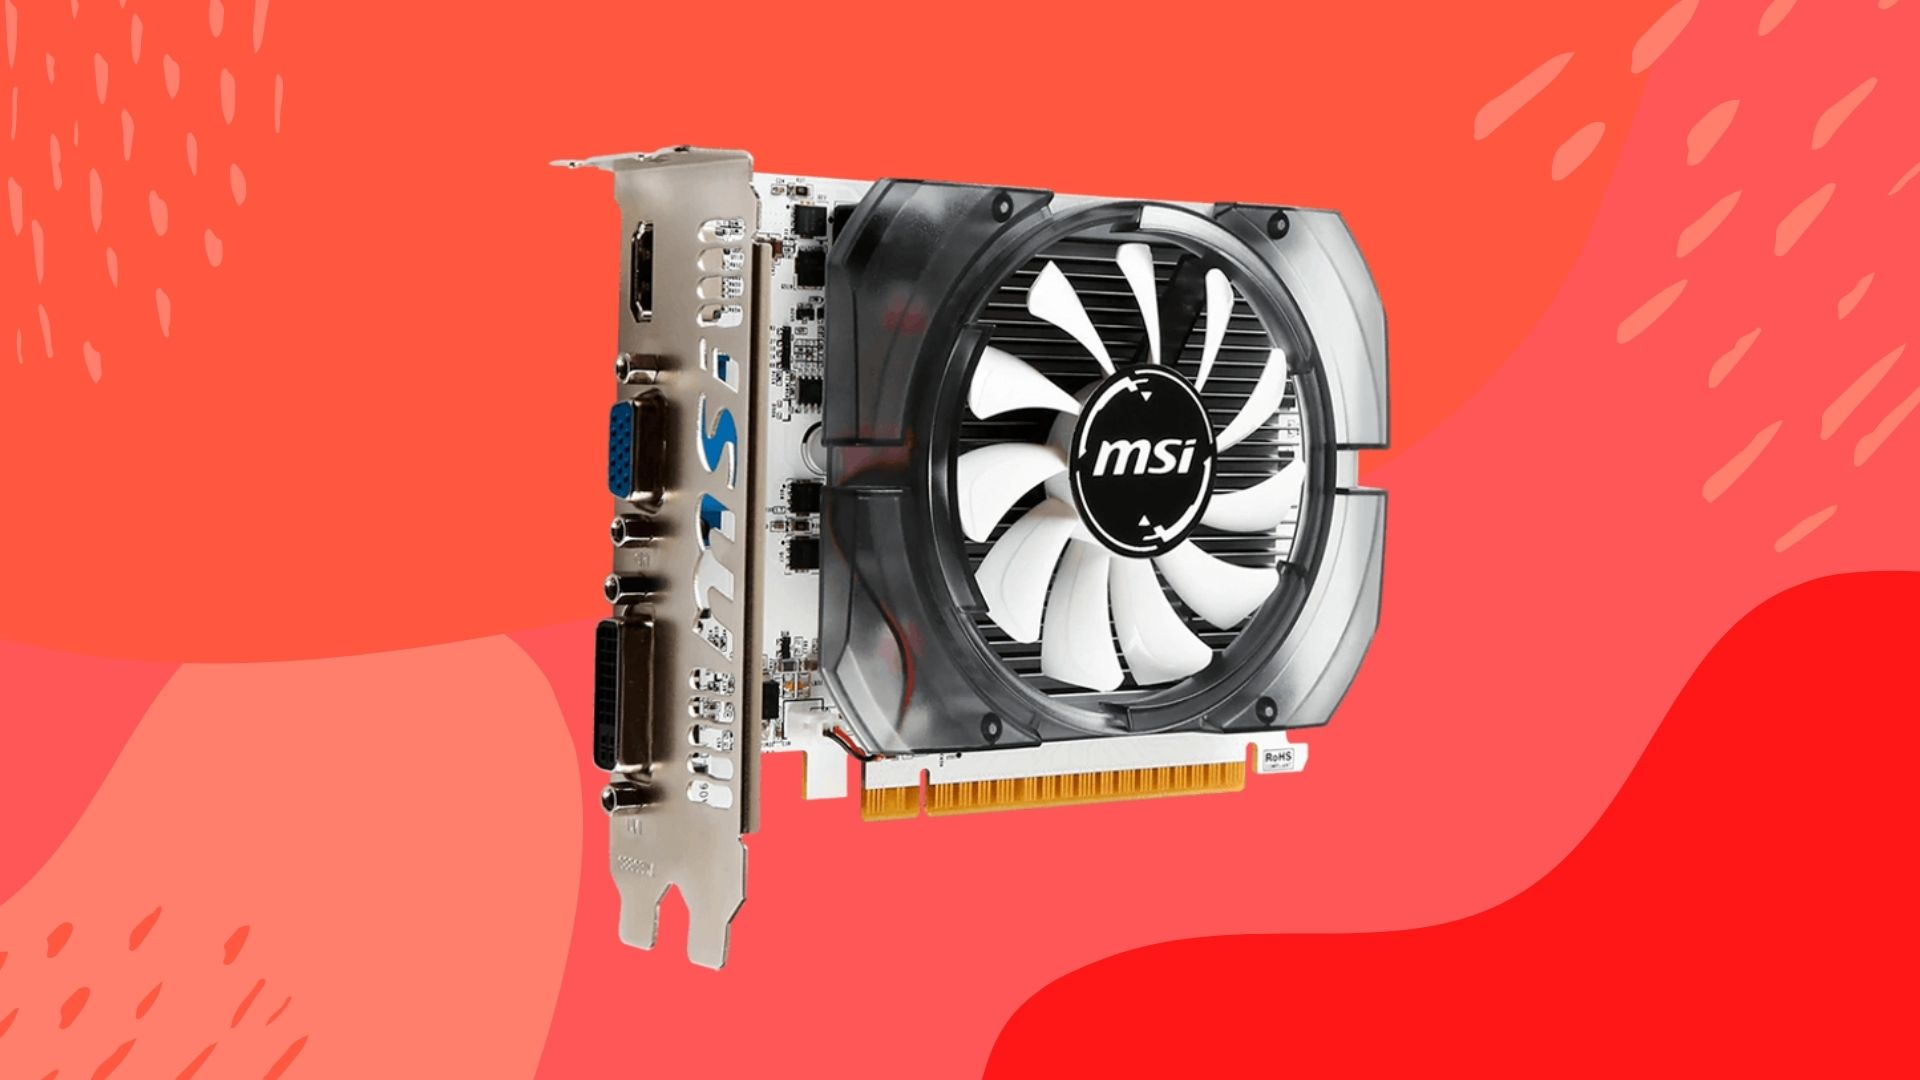 gpu-shortages-are-so-bad-that-the-geforce-gt-730-has-made-a-comeback